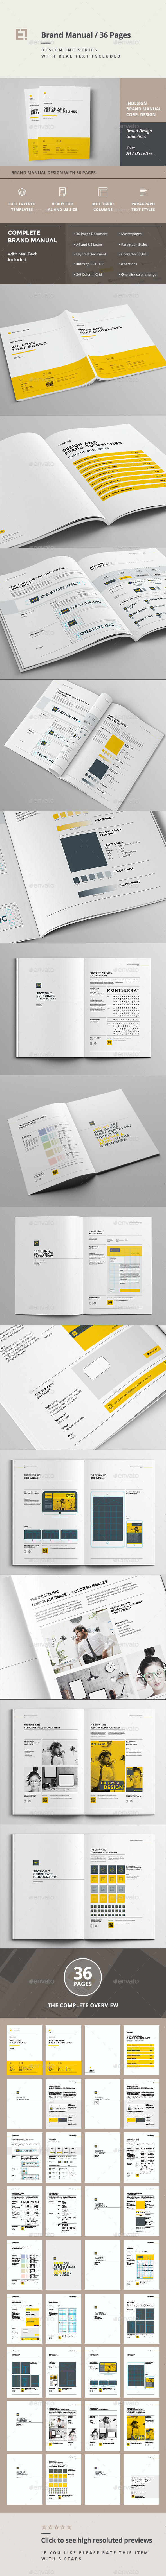 GraphicRiver Brand Manual Template 11323698